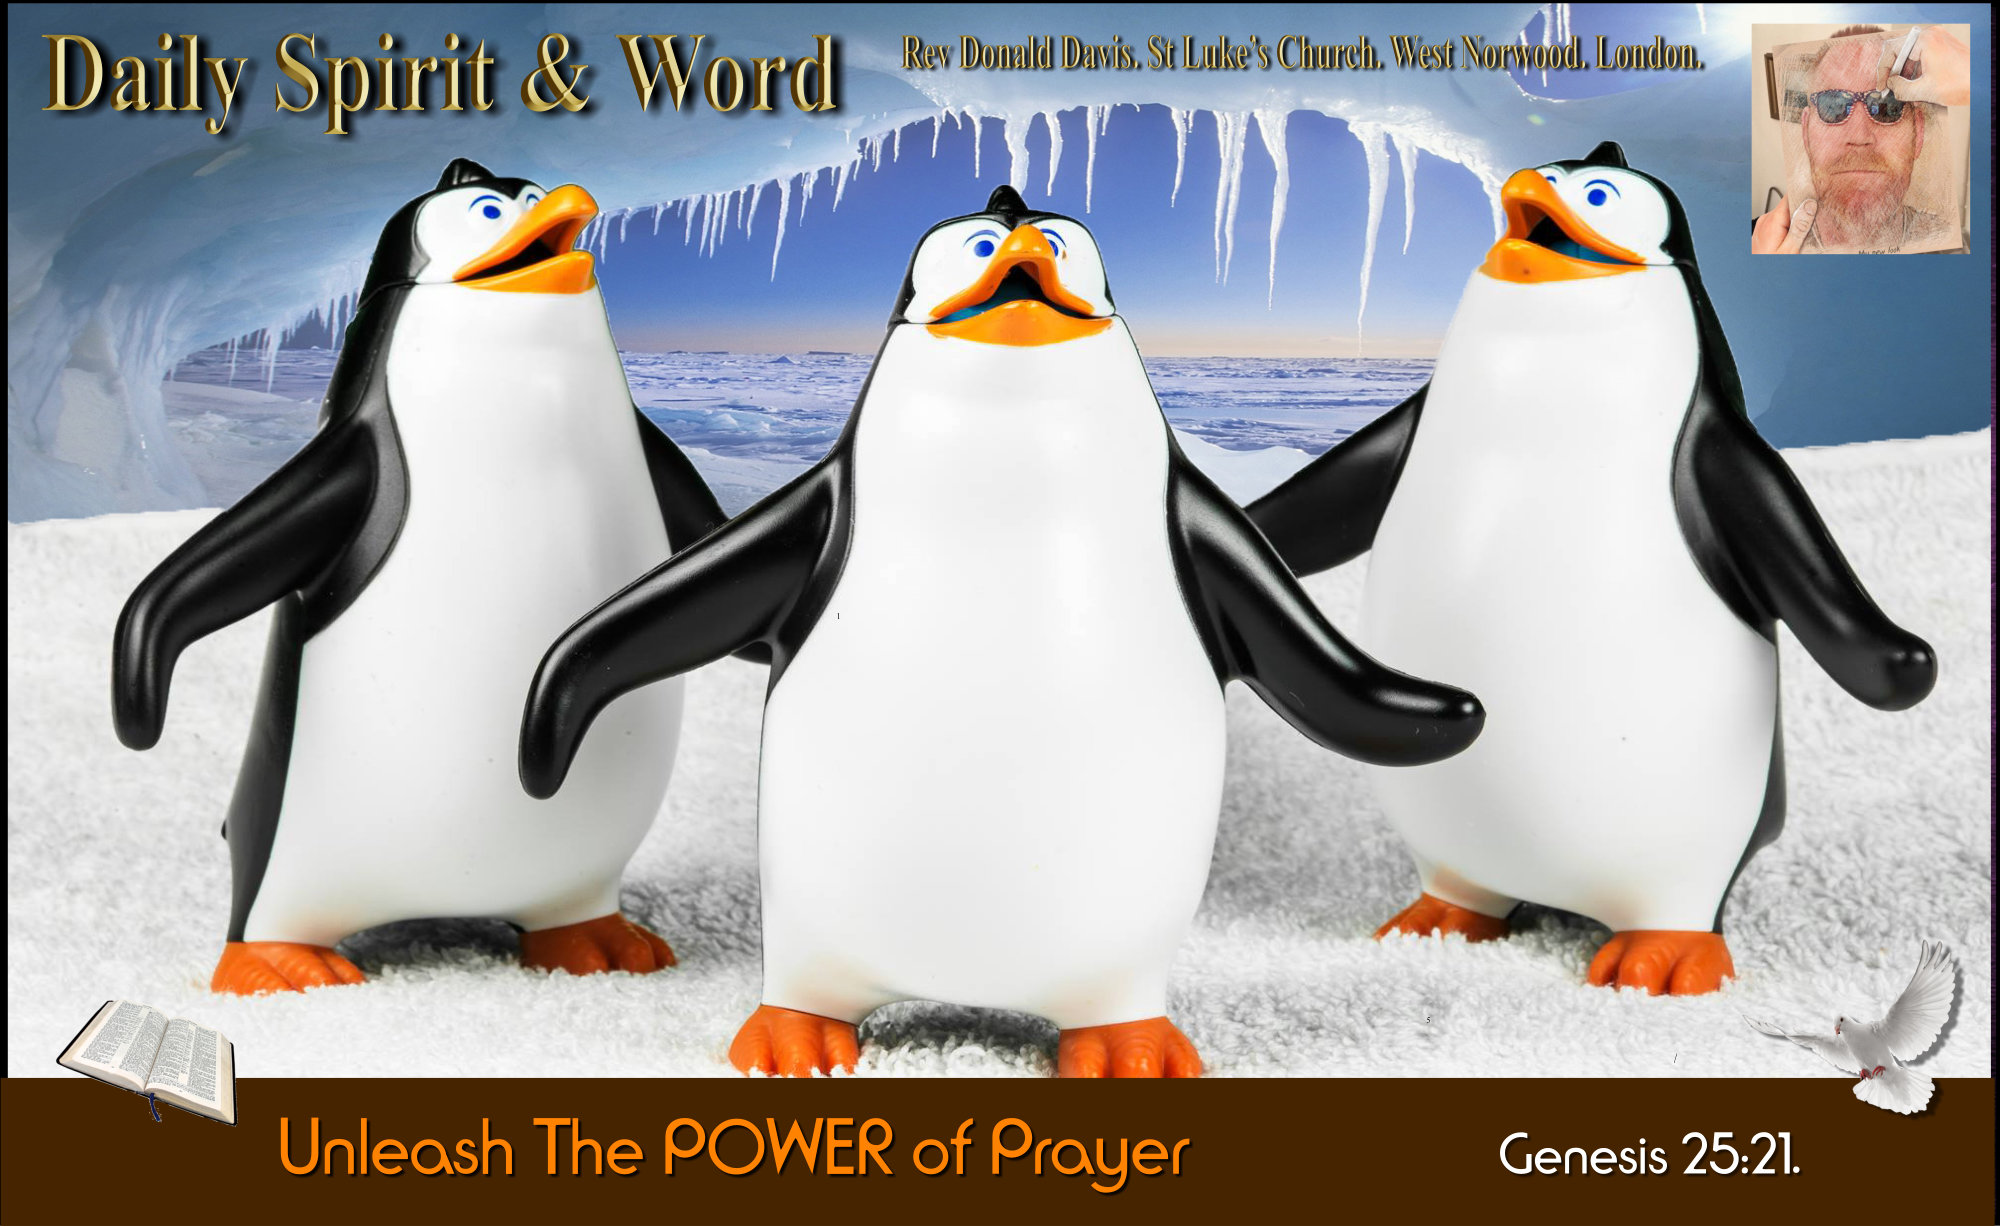 The POWER of Prayer in not the prayer but the PERSON to whom we Pray. Jesus